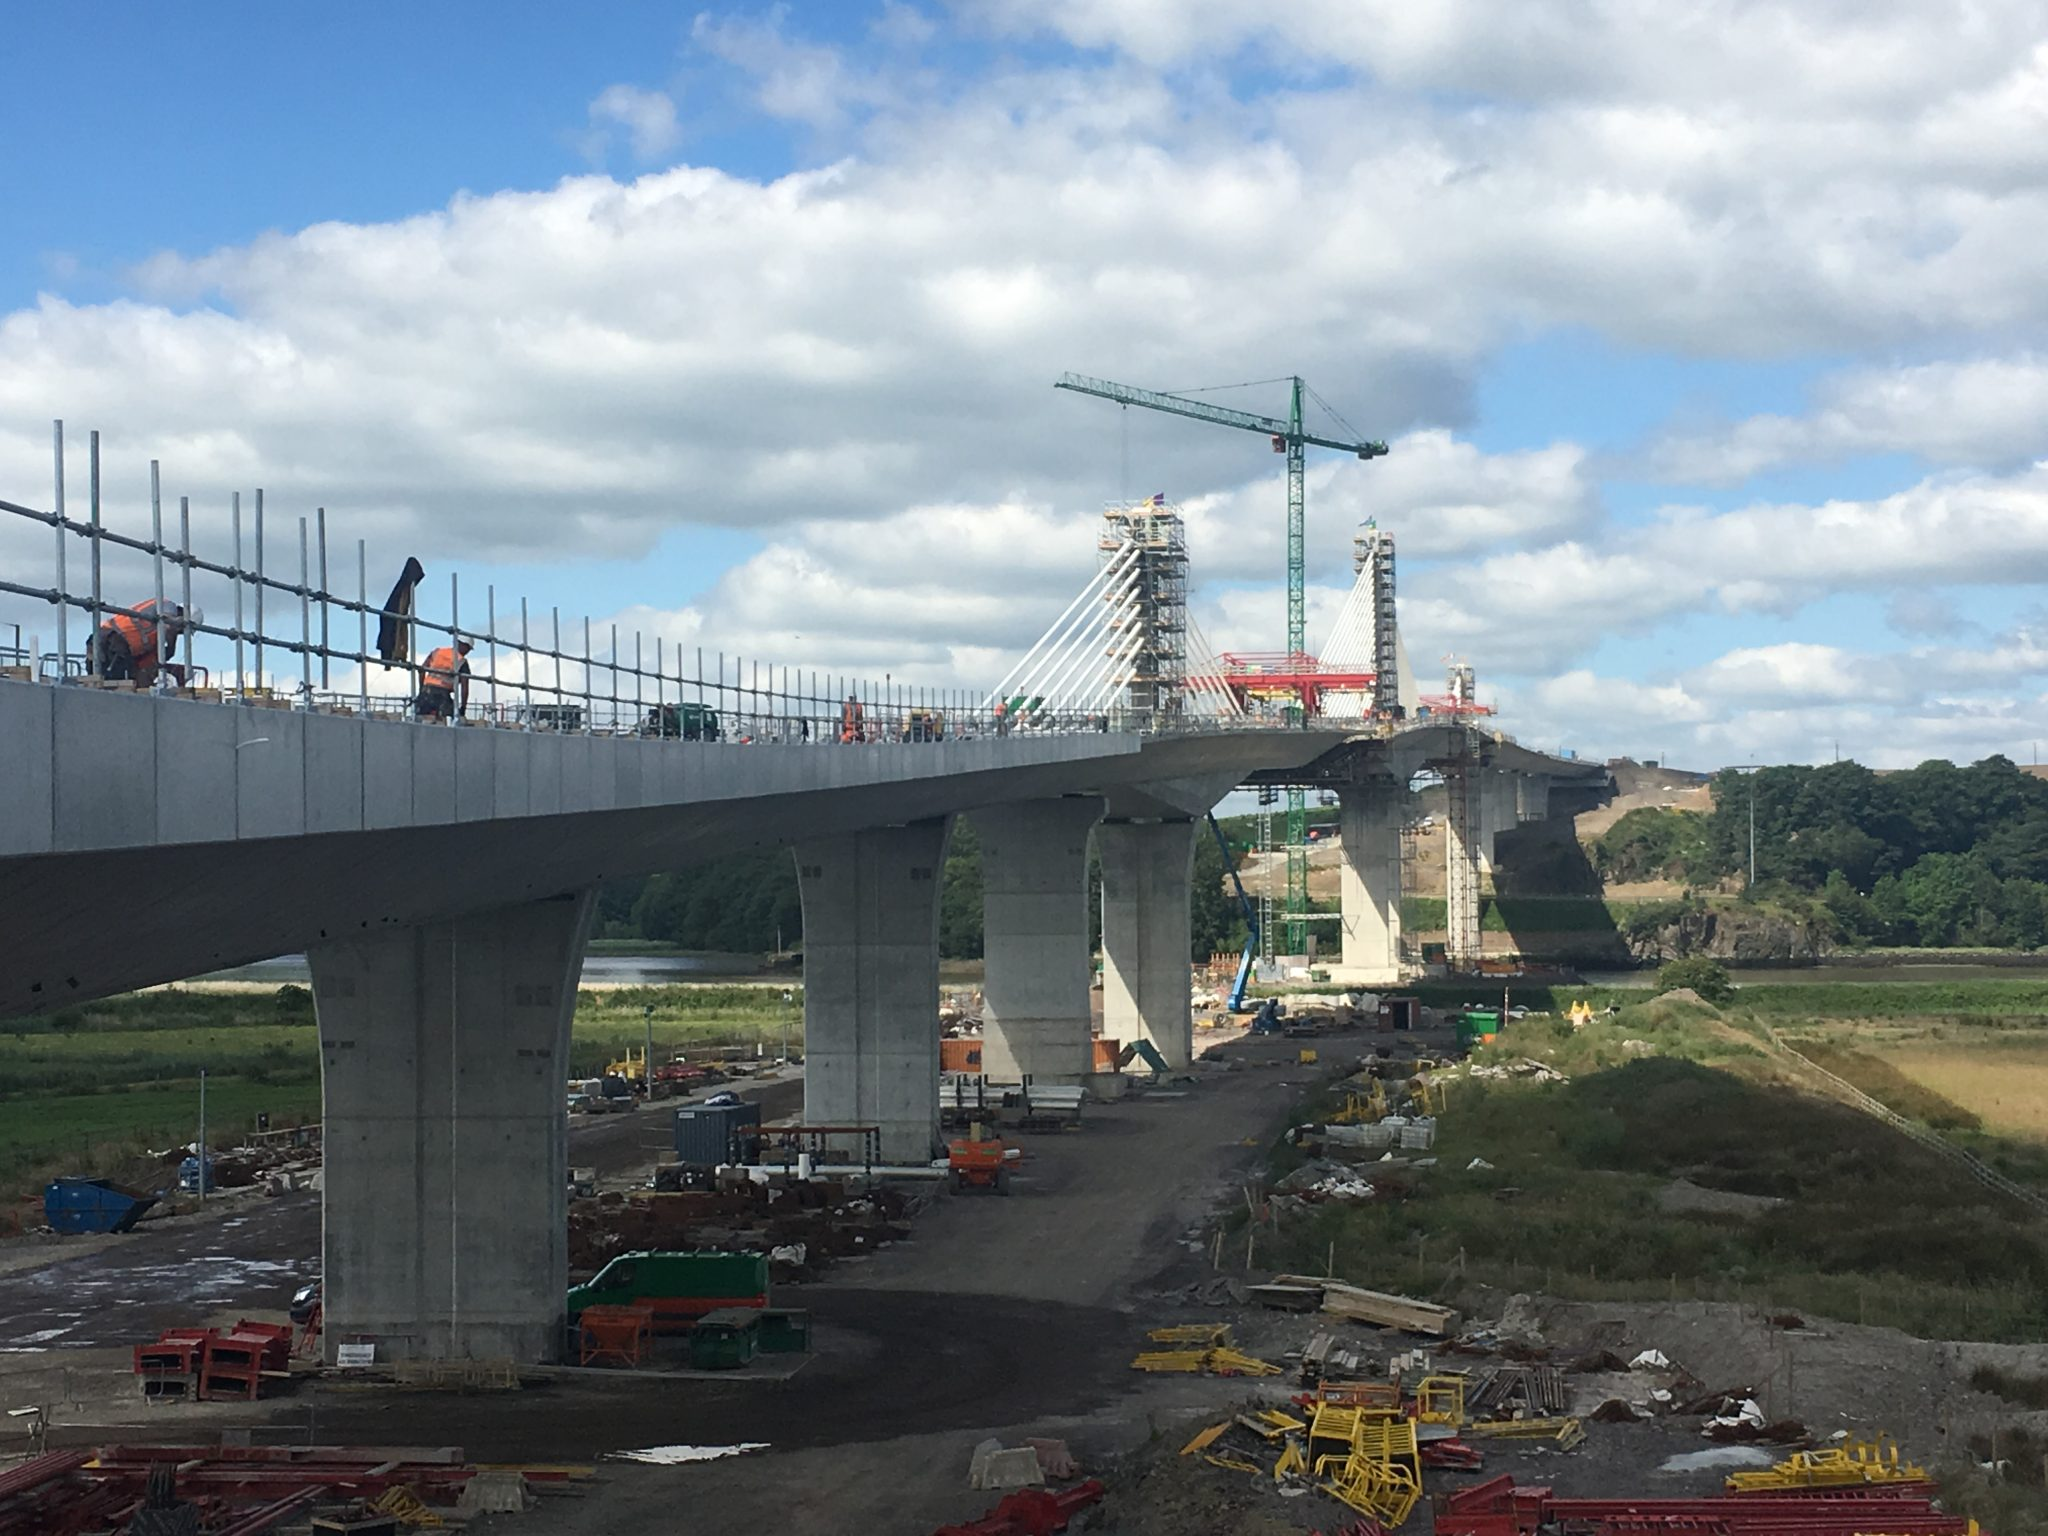 Special Formwork travellers New Barrow Bridge Ireland by RUBRICA BRIDGES